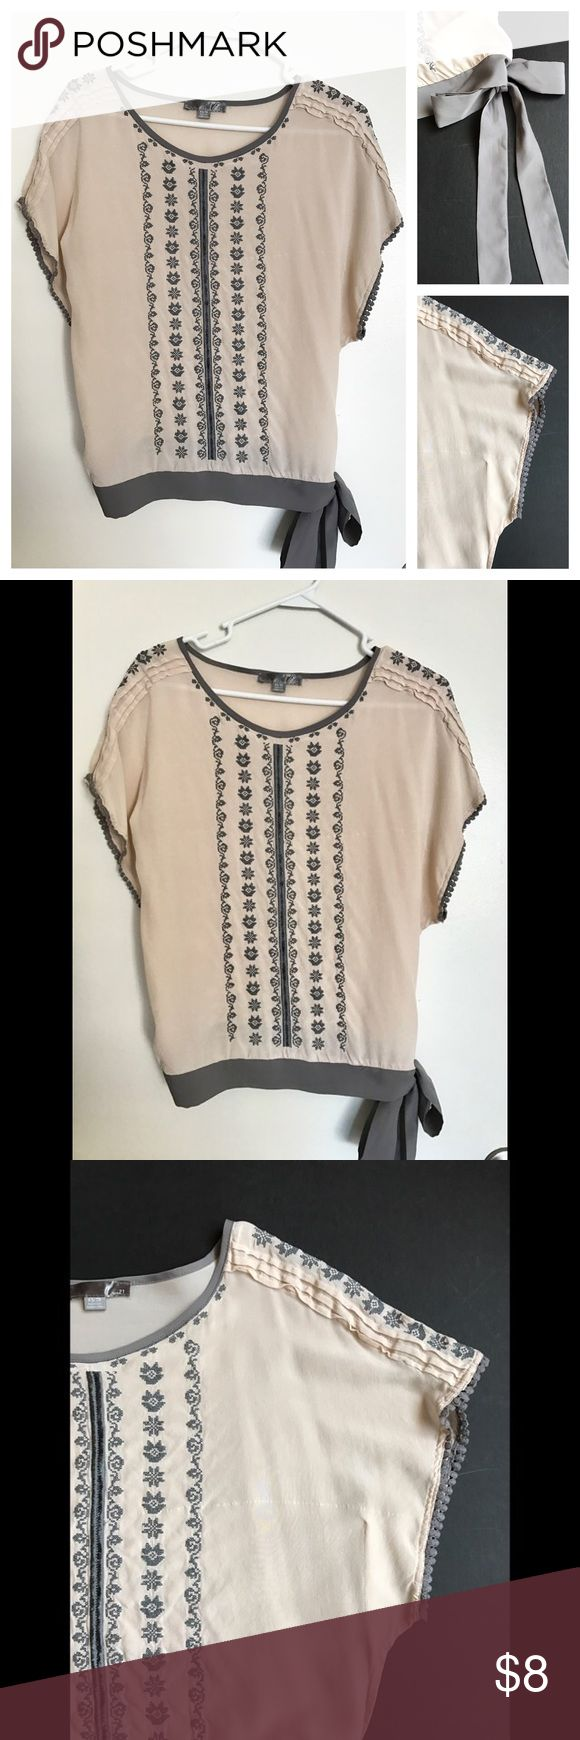 FOREVER 21, Peasant, Folk, Beige, Batwing Top, XS 🔹Light fabric  🔹With stretchy waist band and tie 🔹Excellent condition (no spots, snags, or odors) 🔹From smoke-free home Forever 21 Tops Blouses